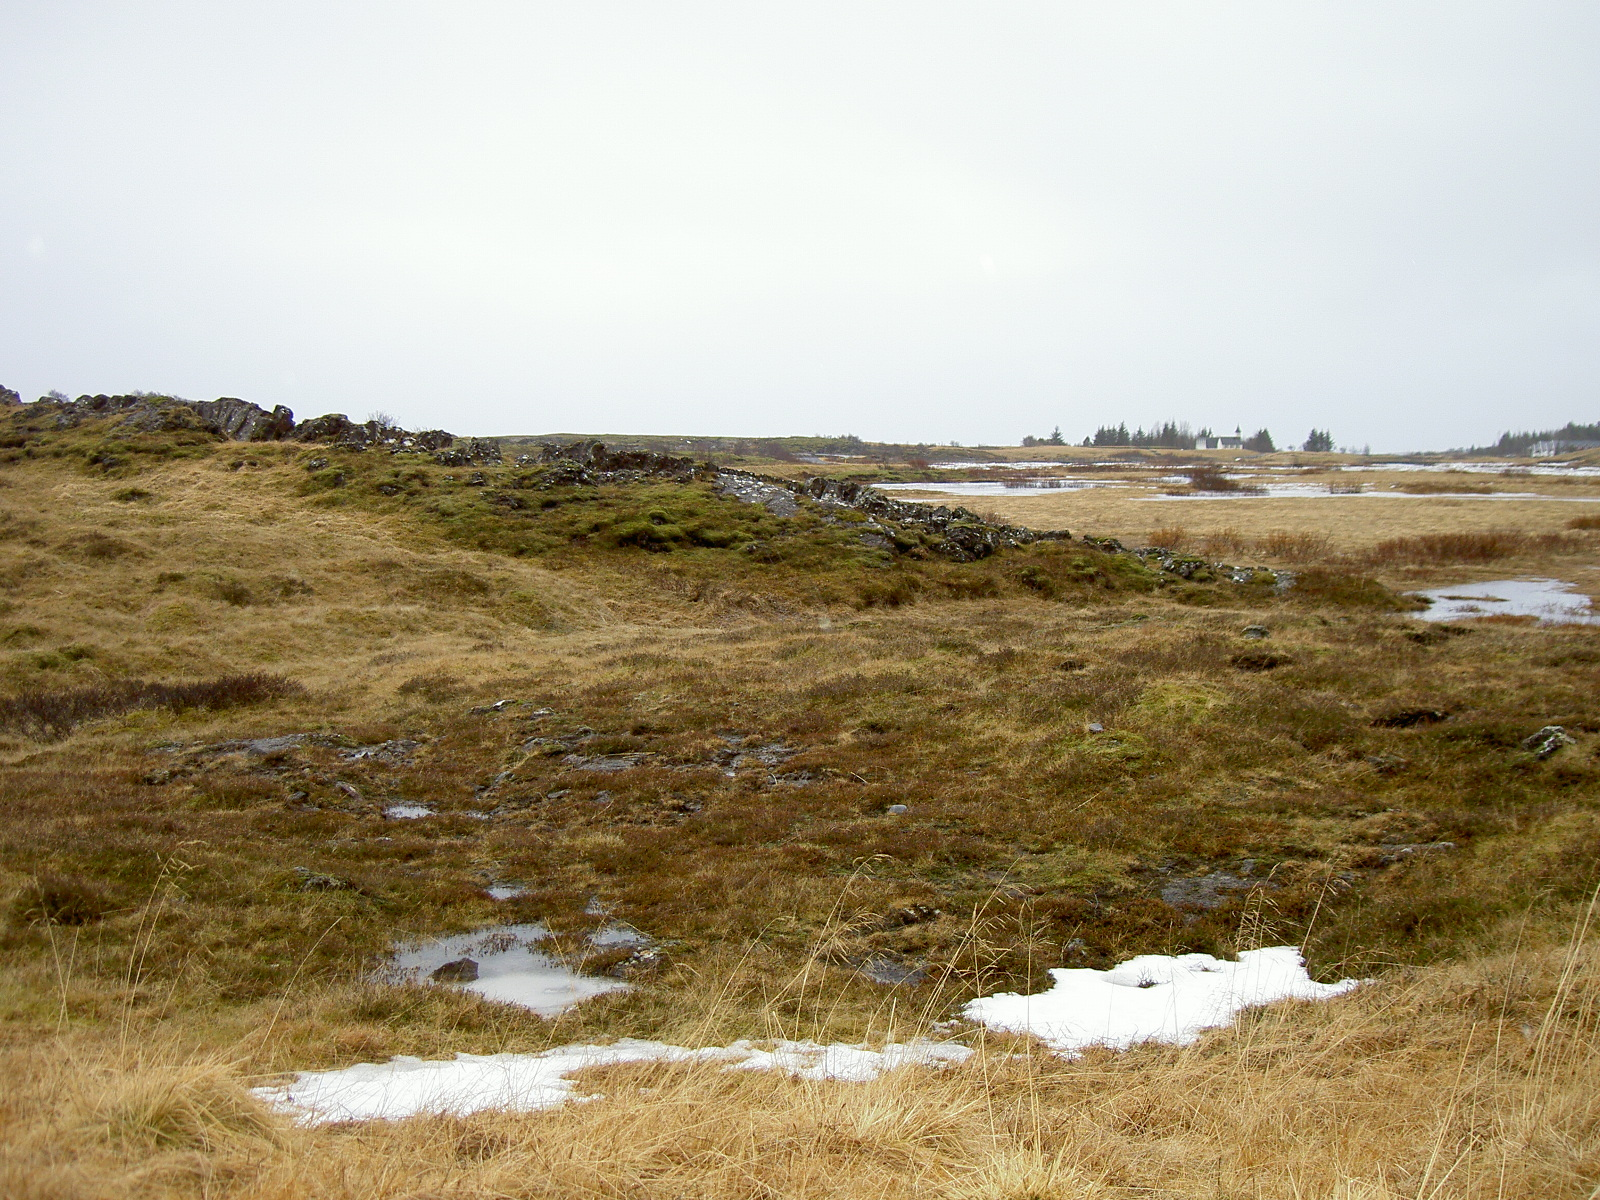 View near location of first Icelandic general assembly (purpose of page is to display an image)